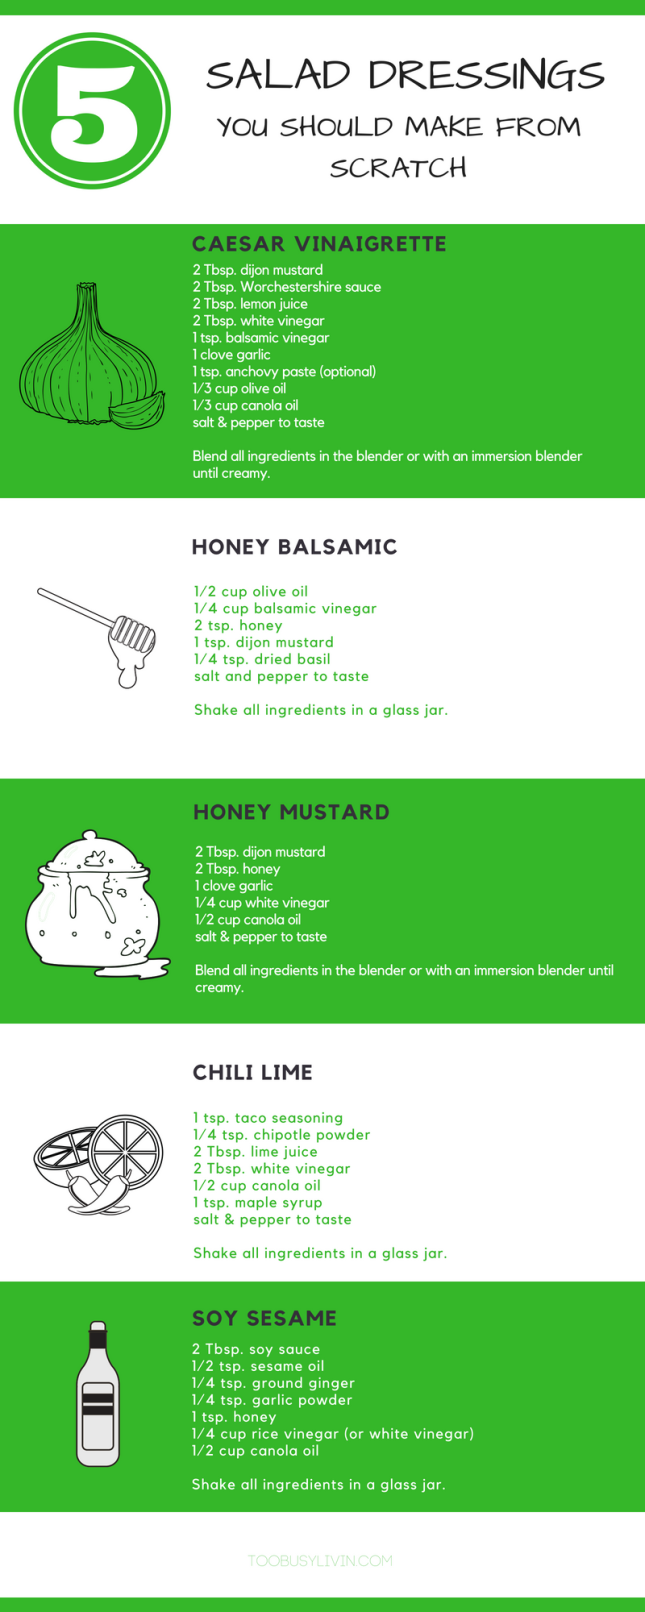 5 salad dressings infographic